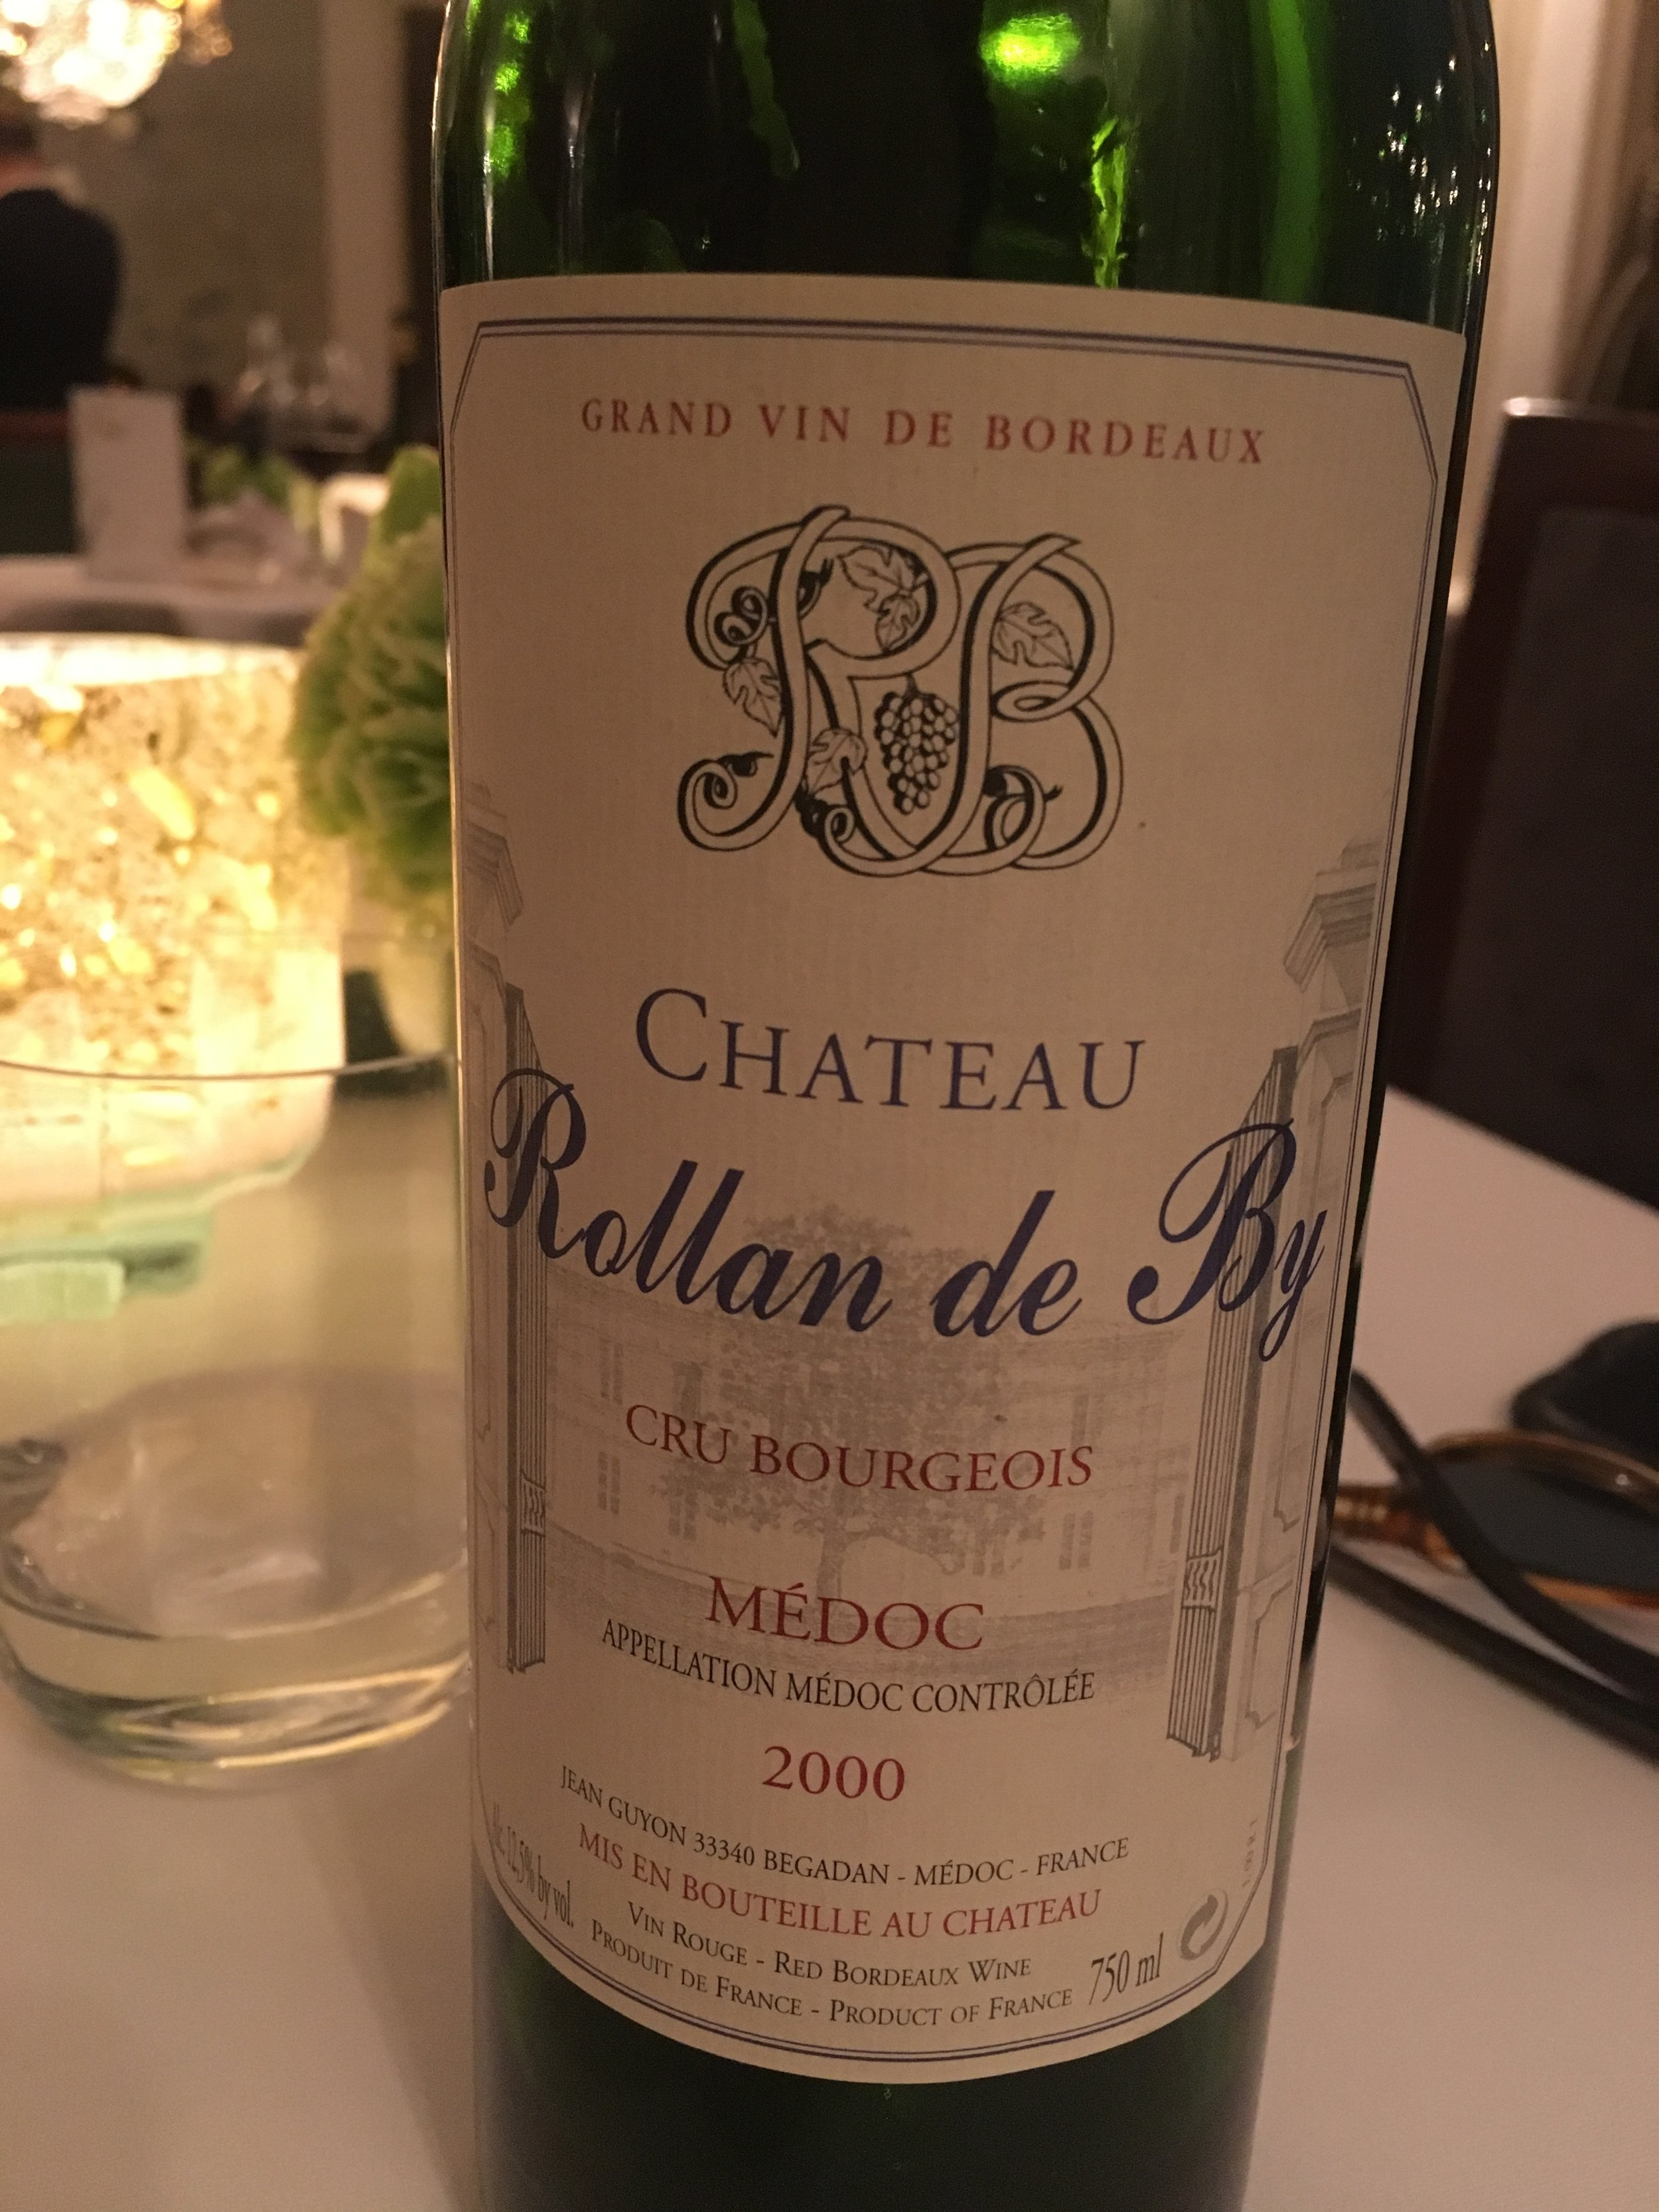 Rollan de By Médoc 2000, smooth as silk (though the sommelier warned us that not every Rollan de By is this good)